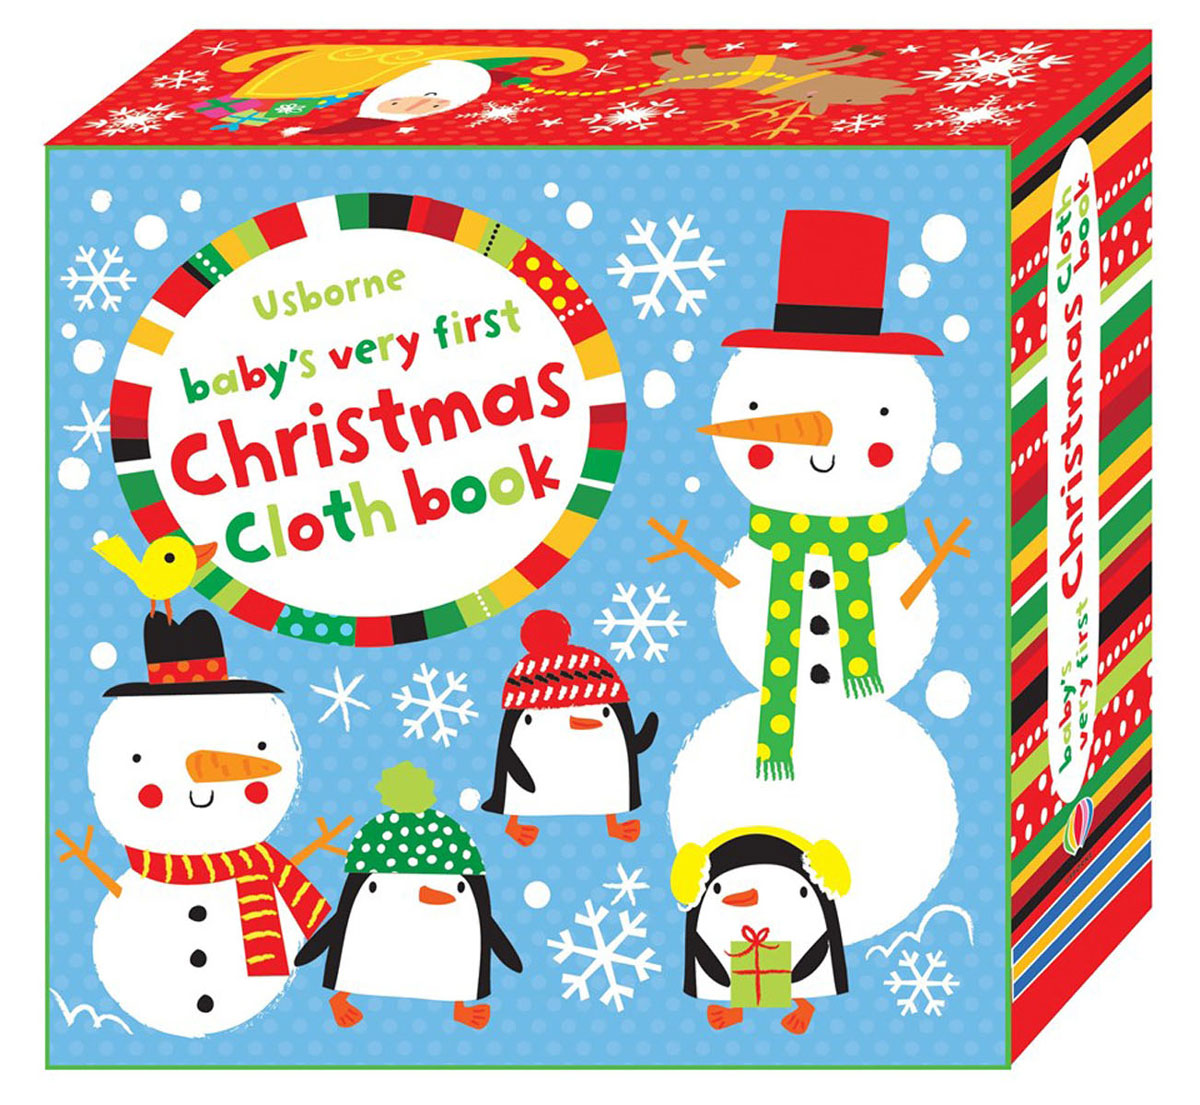 Baby's Very First: Christmas: Cloth Book santa first colouring book with stickers